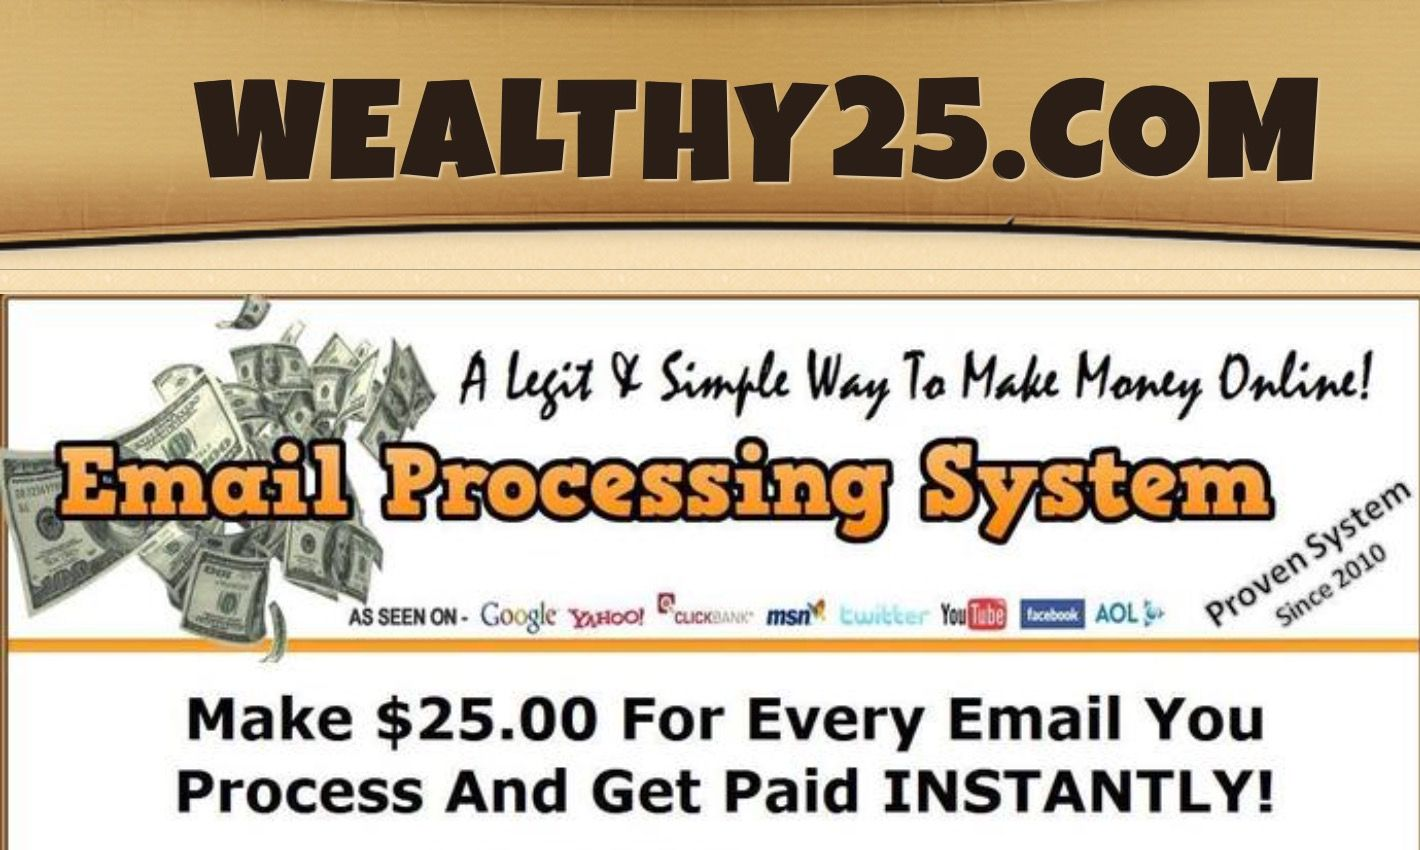 Email Processing System, Easy to earn money…..from home, no hype